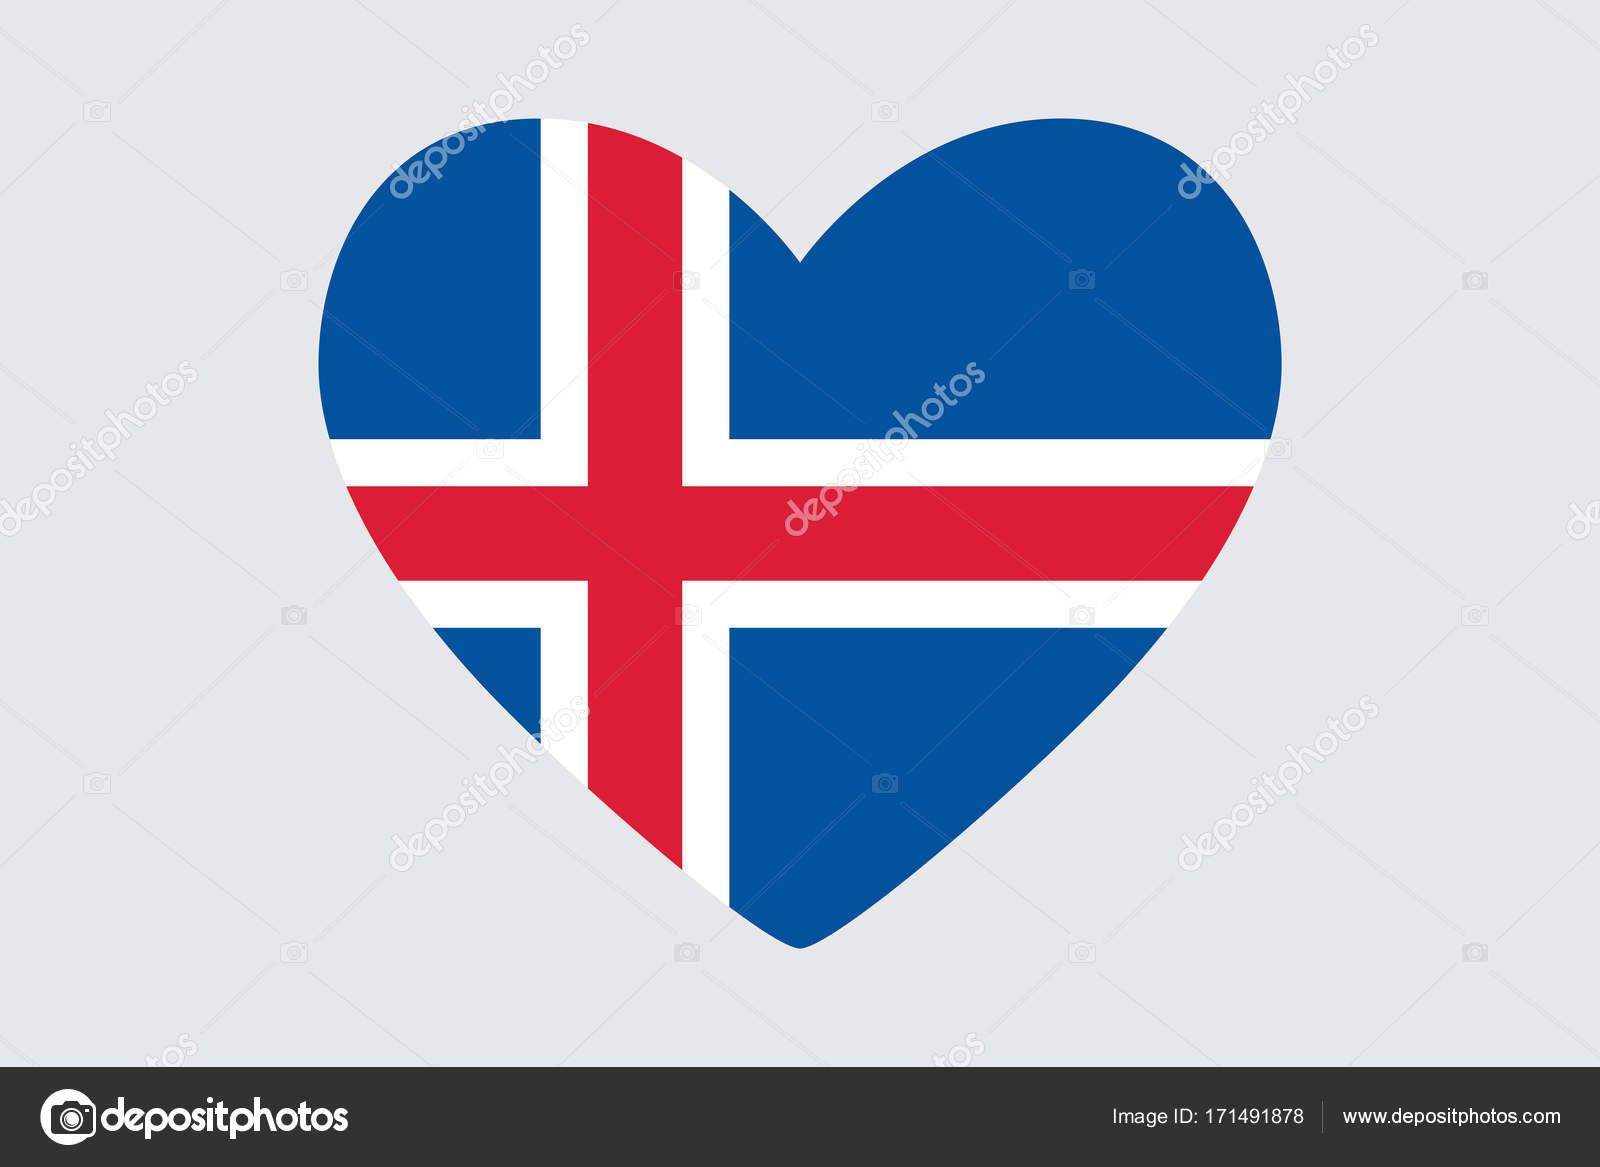 Heart In Colors And Symbols Of The Iceland Flag Vector Stock